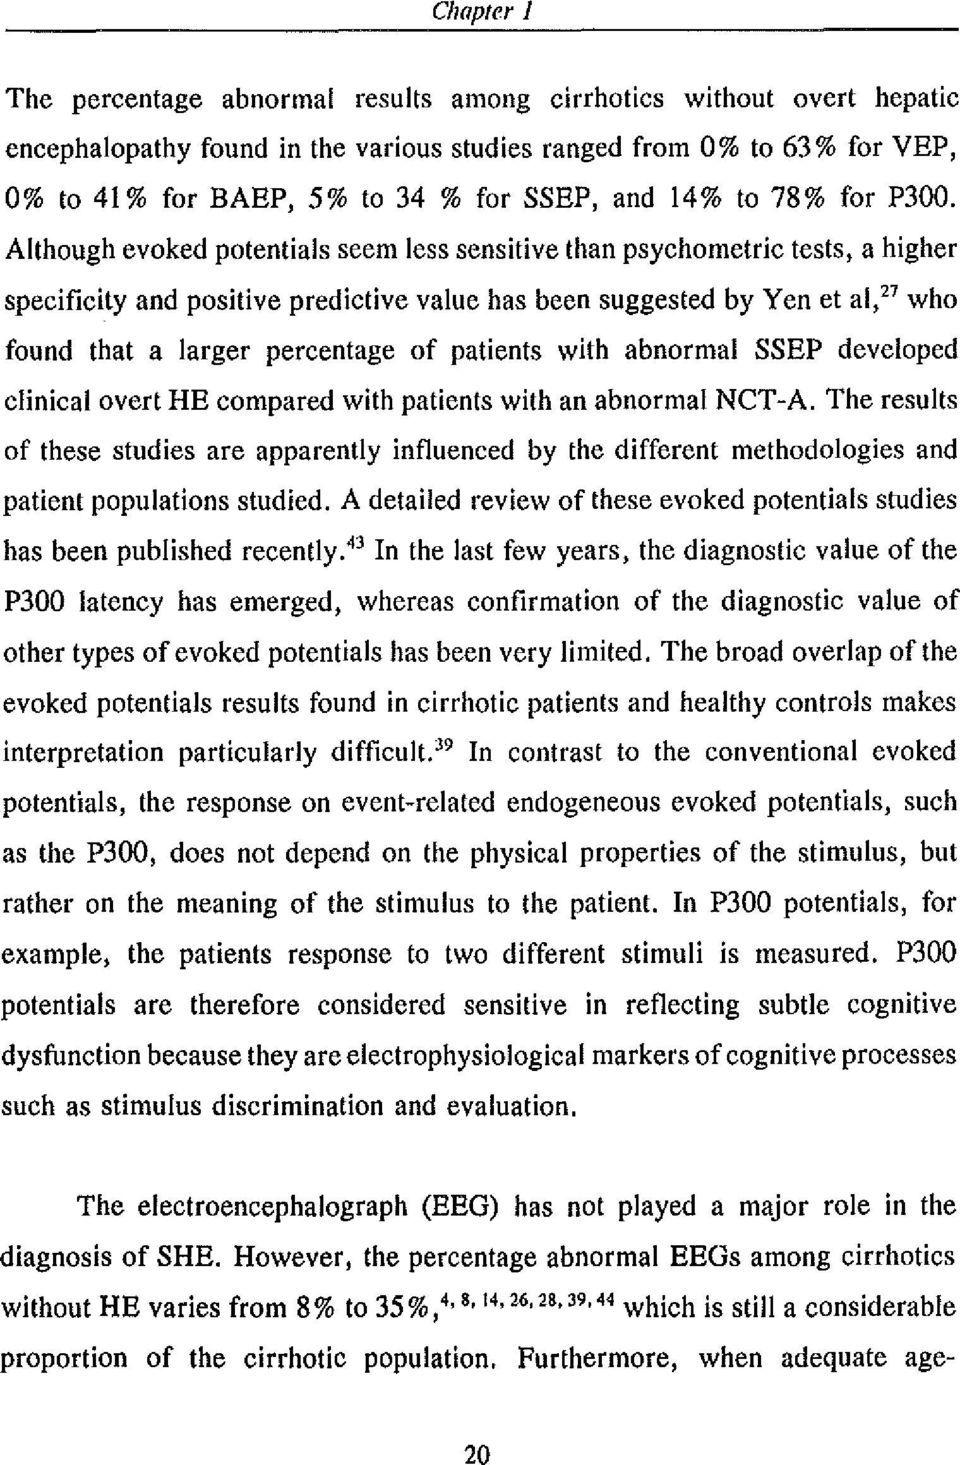 Although evoked potentials seem less sensitive than psychometric tests, a higher specificity and positive predictive value has been suggested by Yen et al,27 who found that a larger percentage of